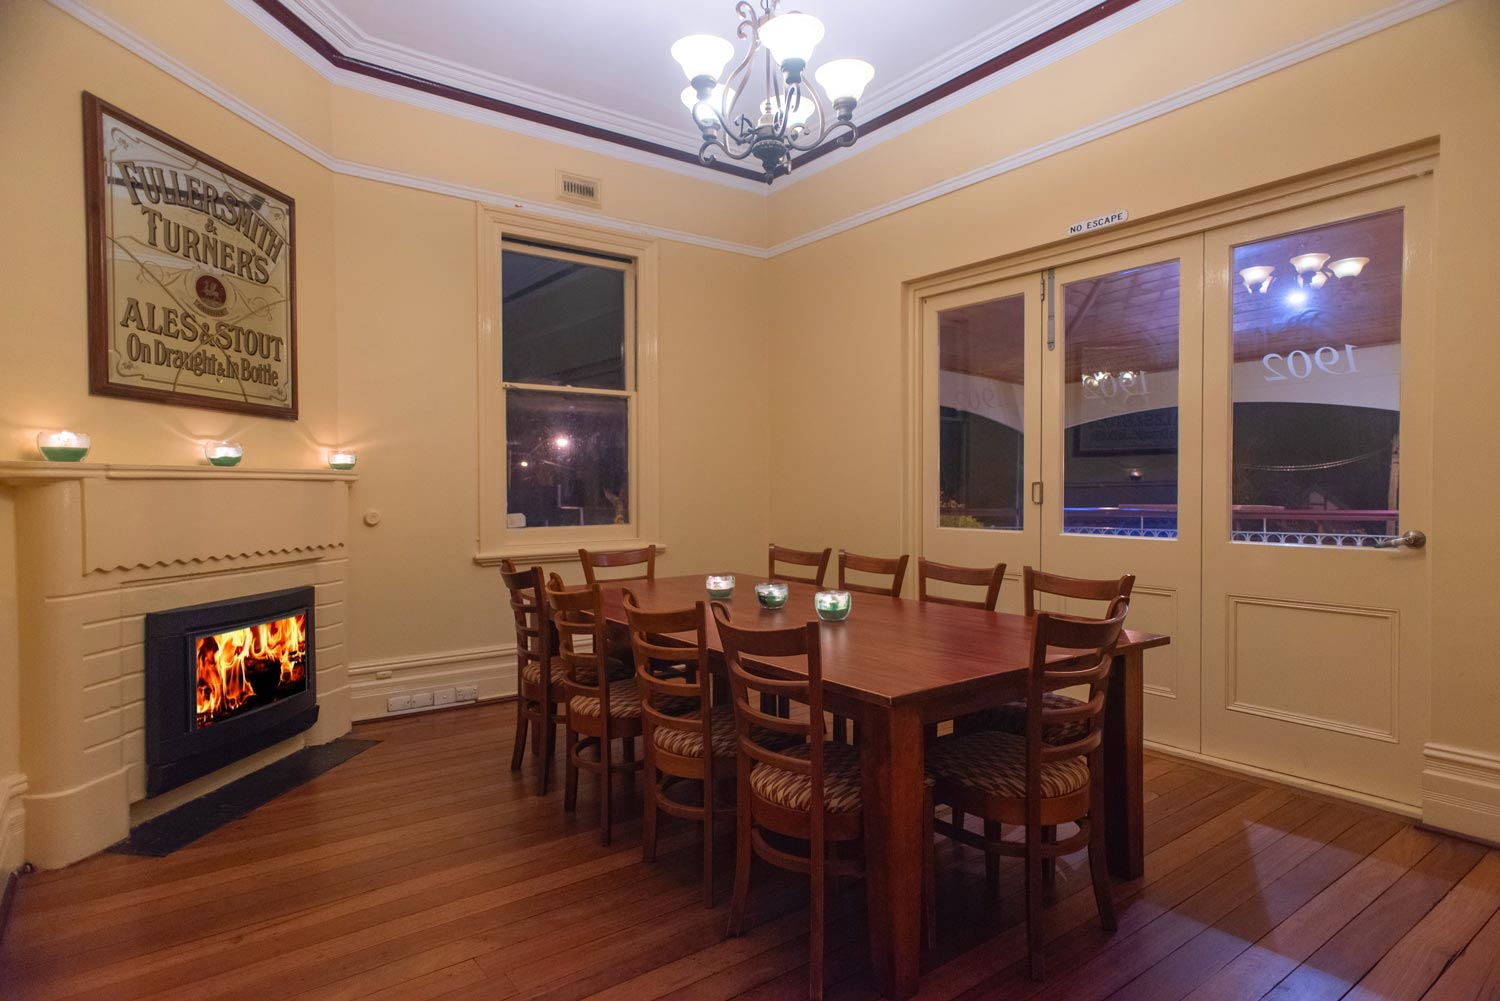 guiness_room_with_fireplace.jpg